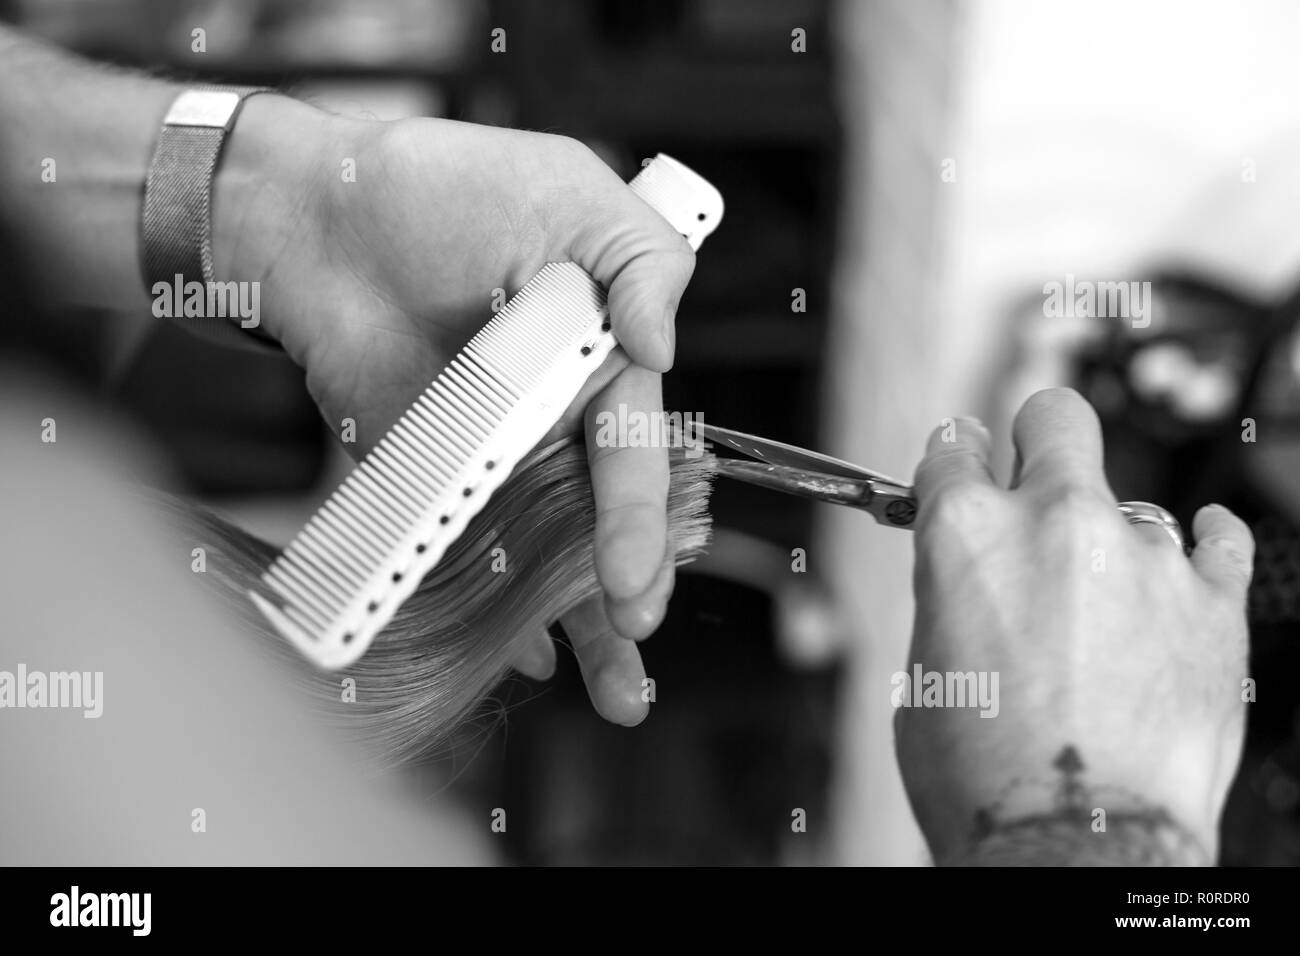 hair cutting in the salon hairdresser, scissors close-up in the hands of the master. - Stock Image